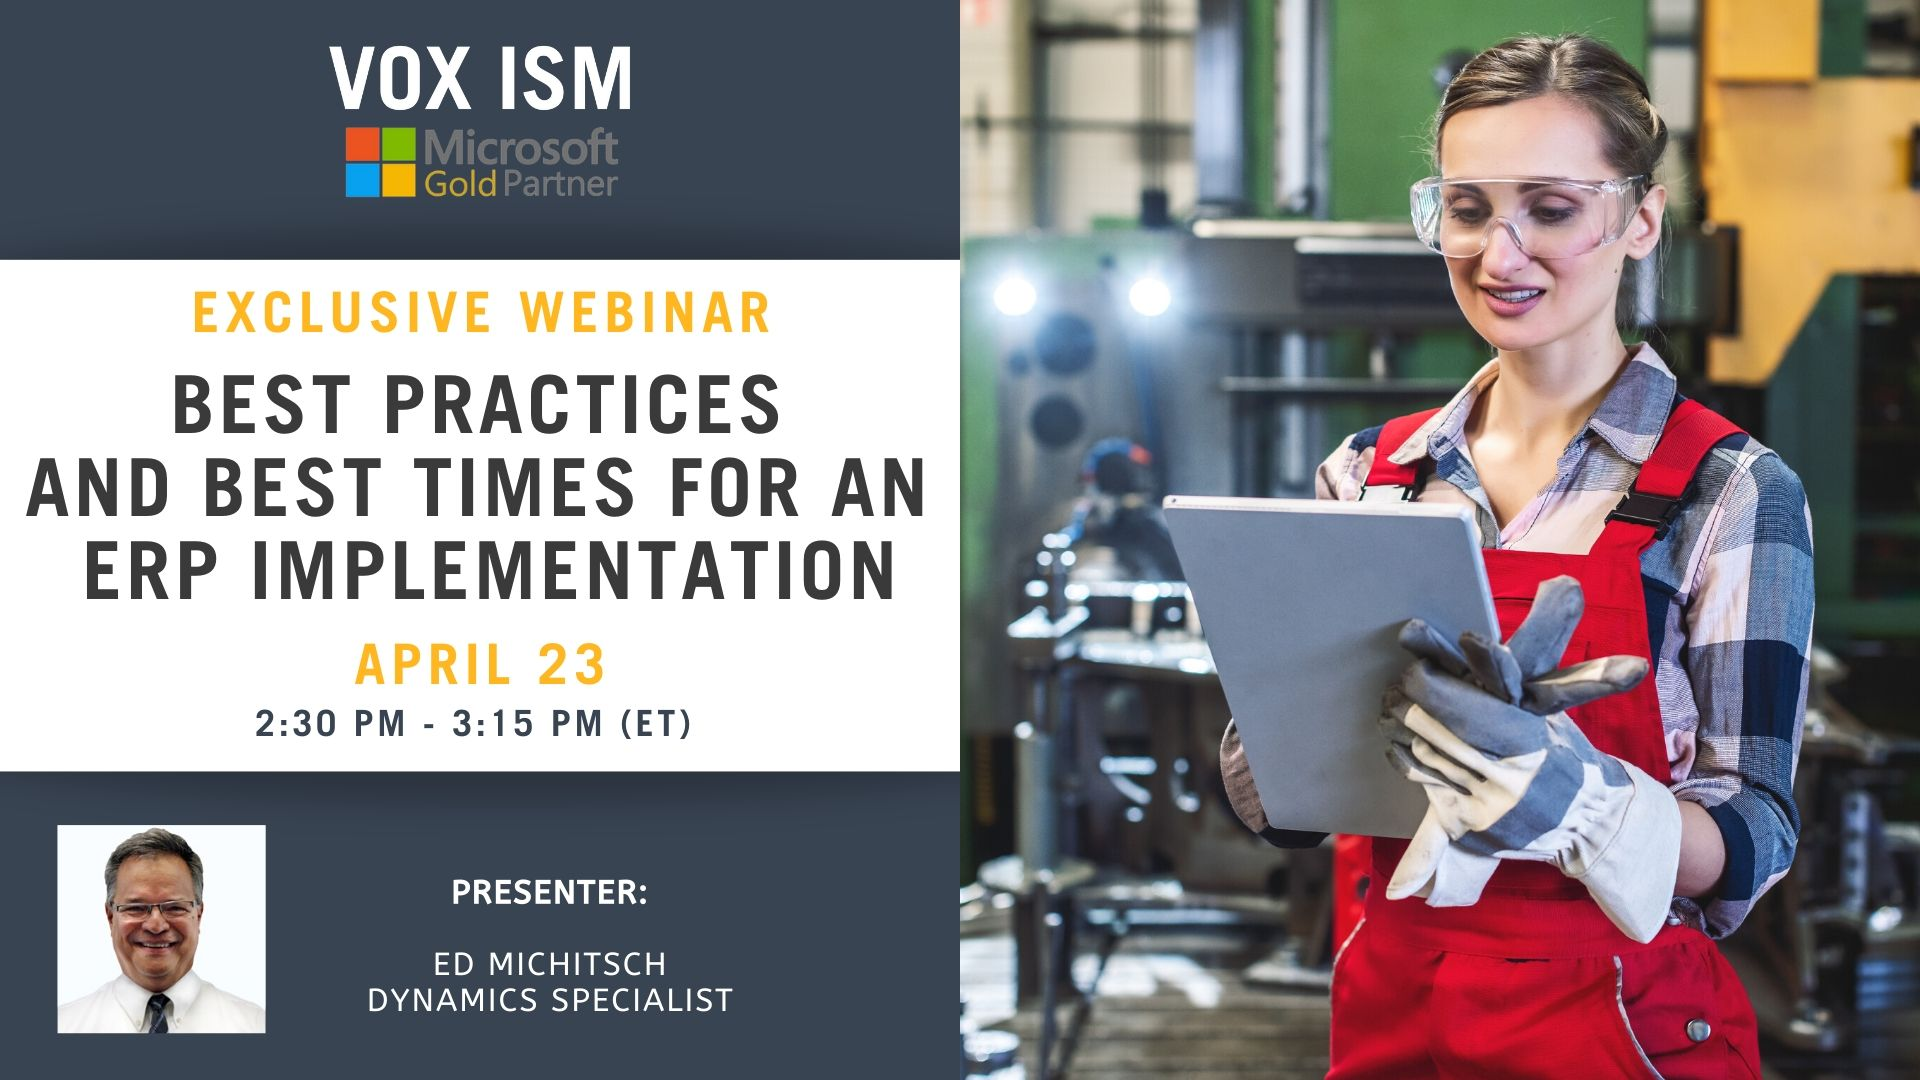 Best Practices and Best Times for an ERP Implementation - April 23 - Webinar_VOX ISM